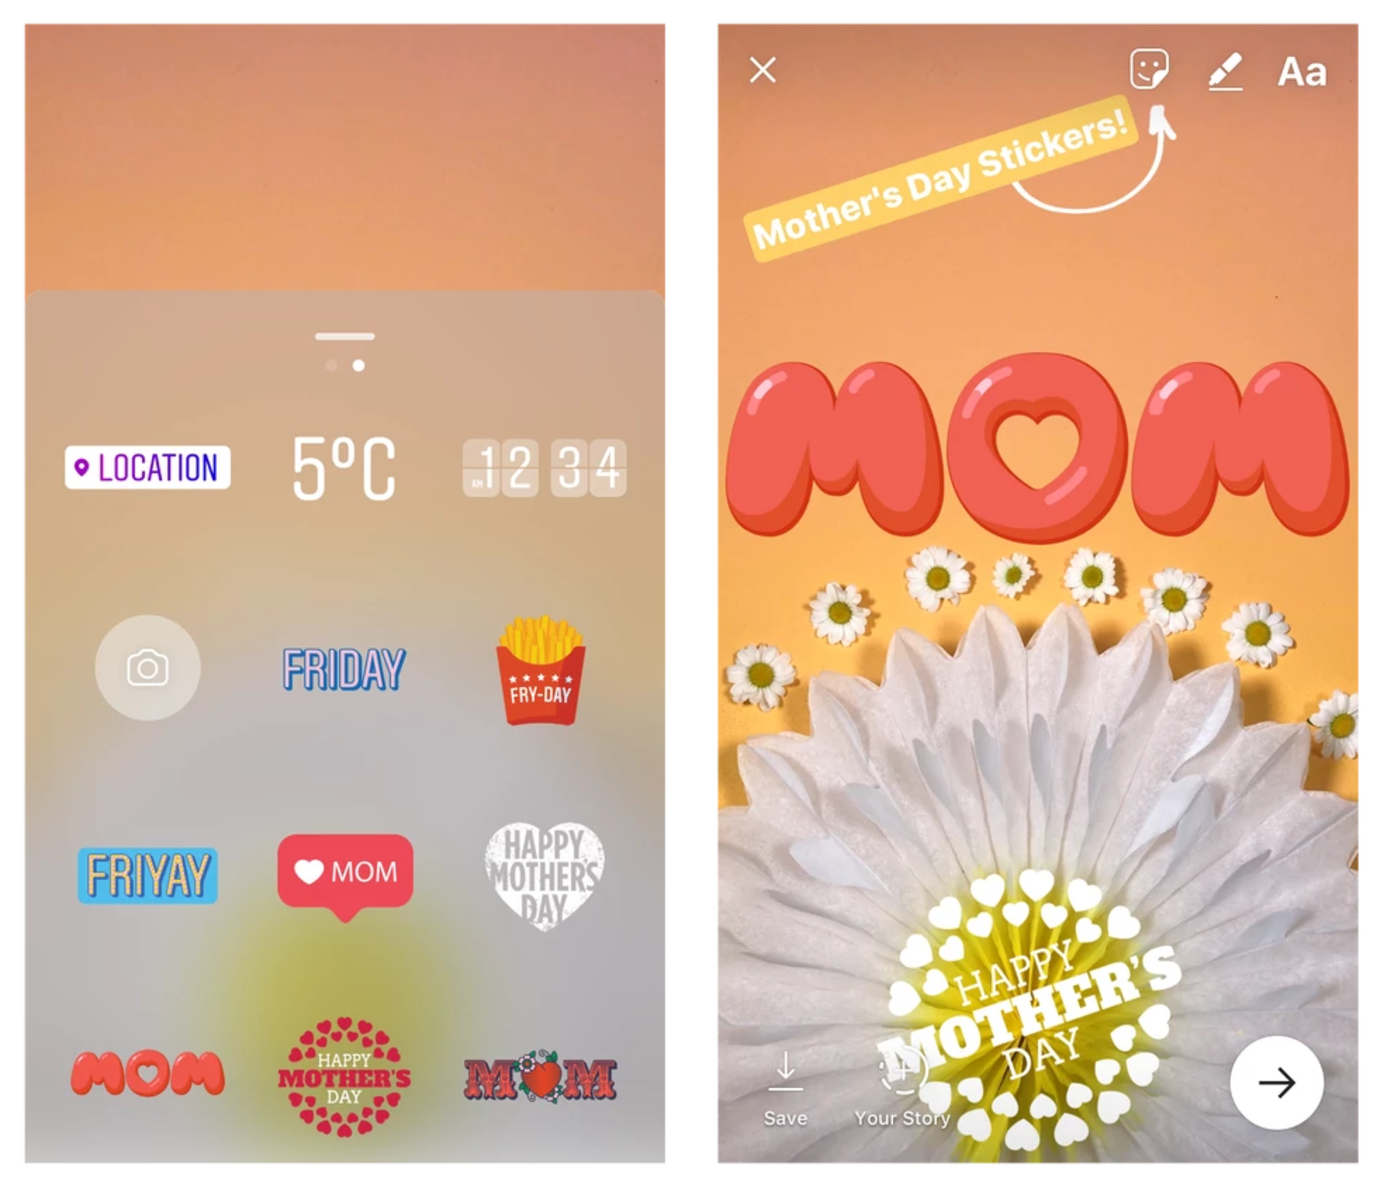 mothersdaystickers